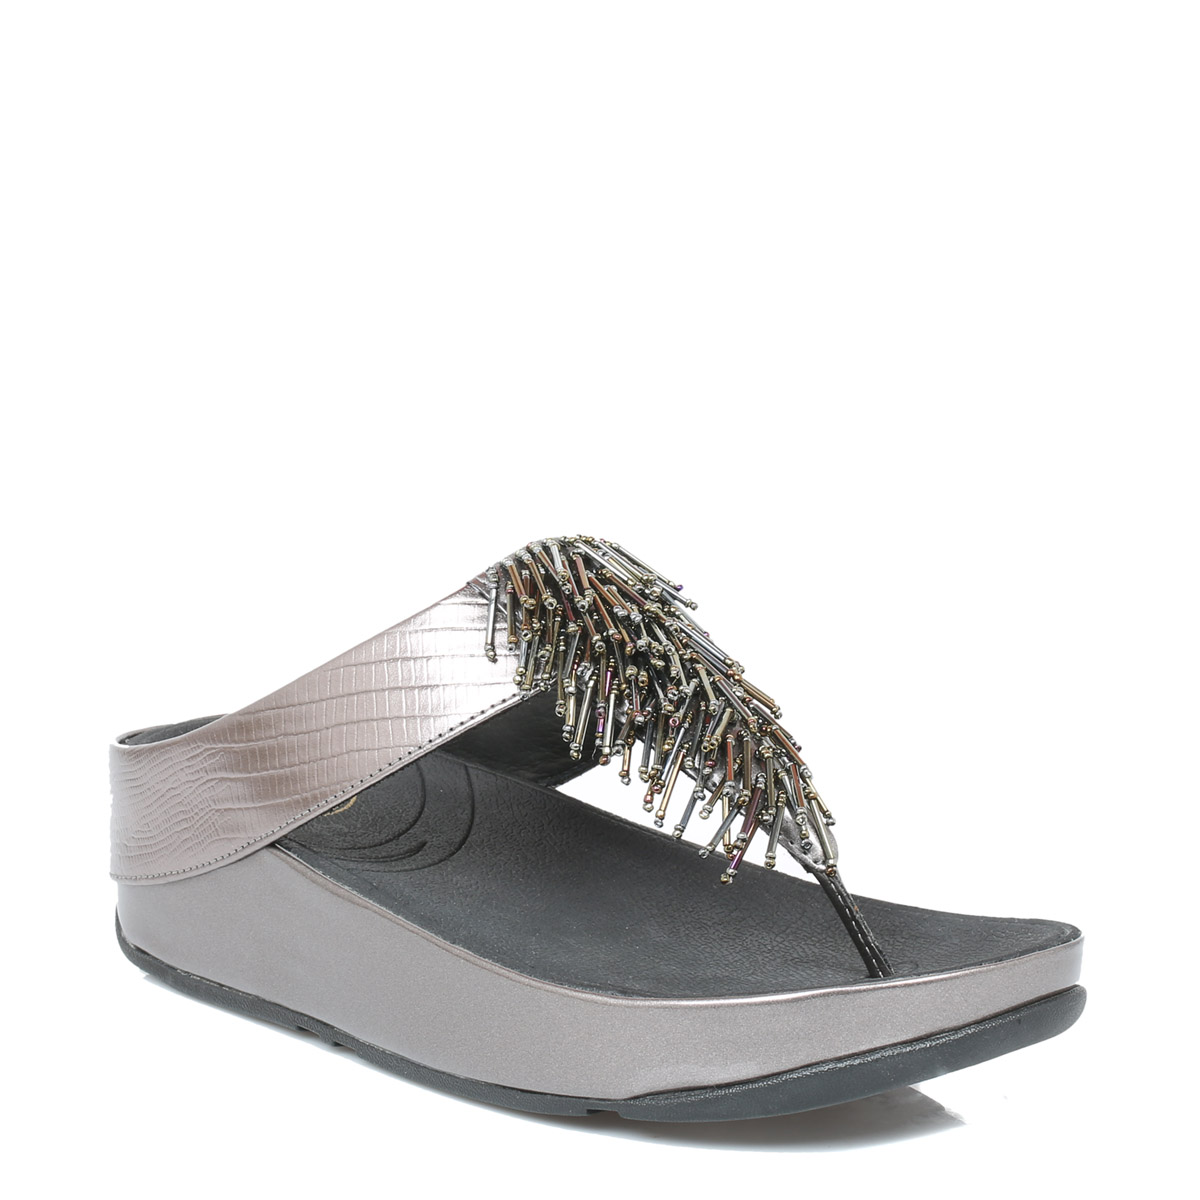 Fitflop Womens Cha Cha Sandals Black Or Silver Slip On